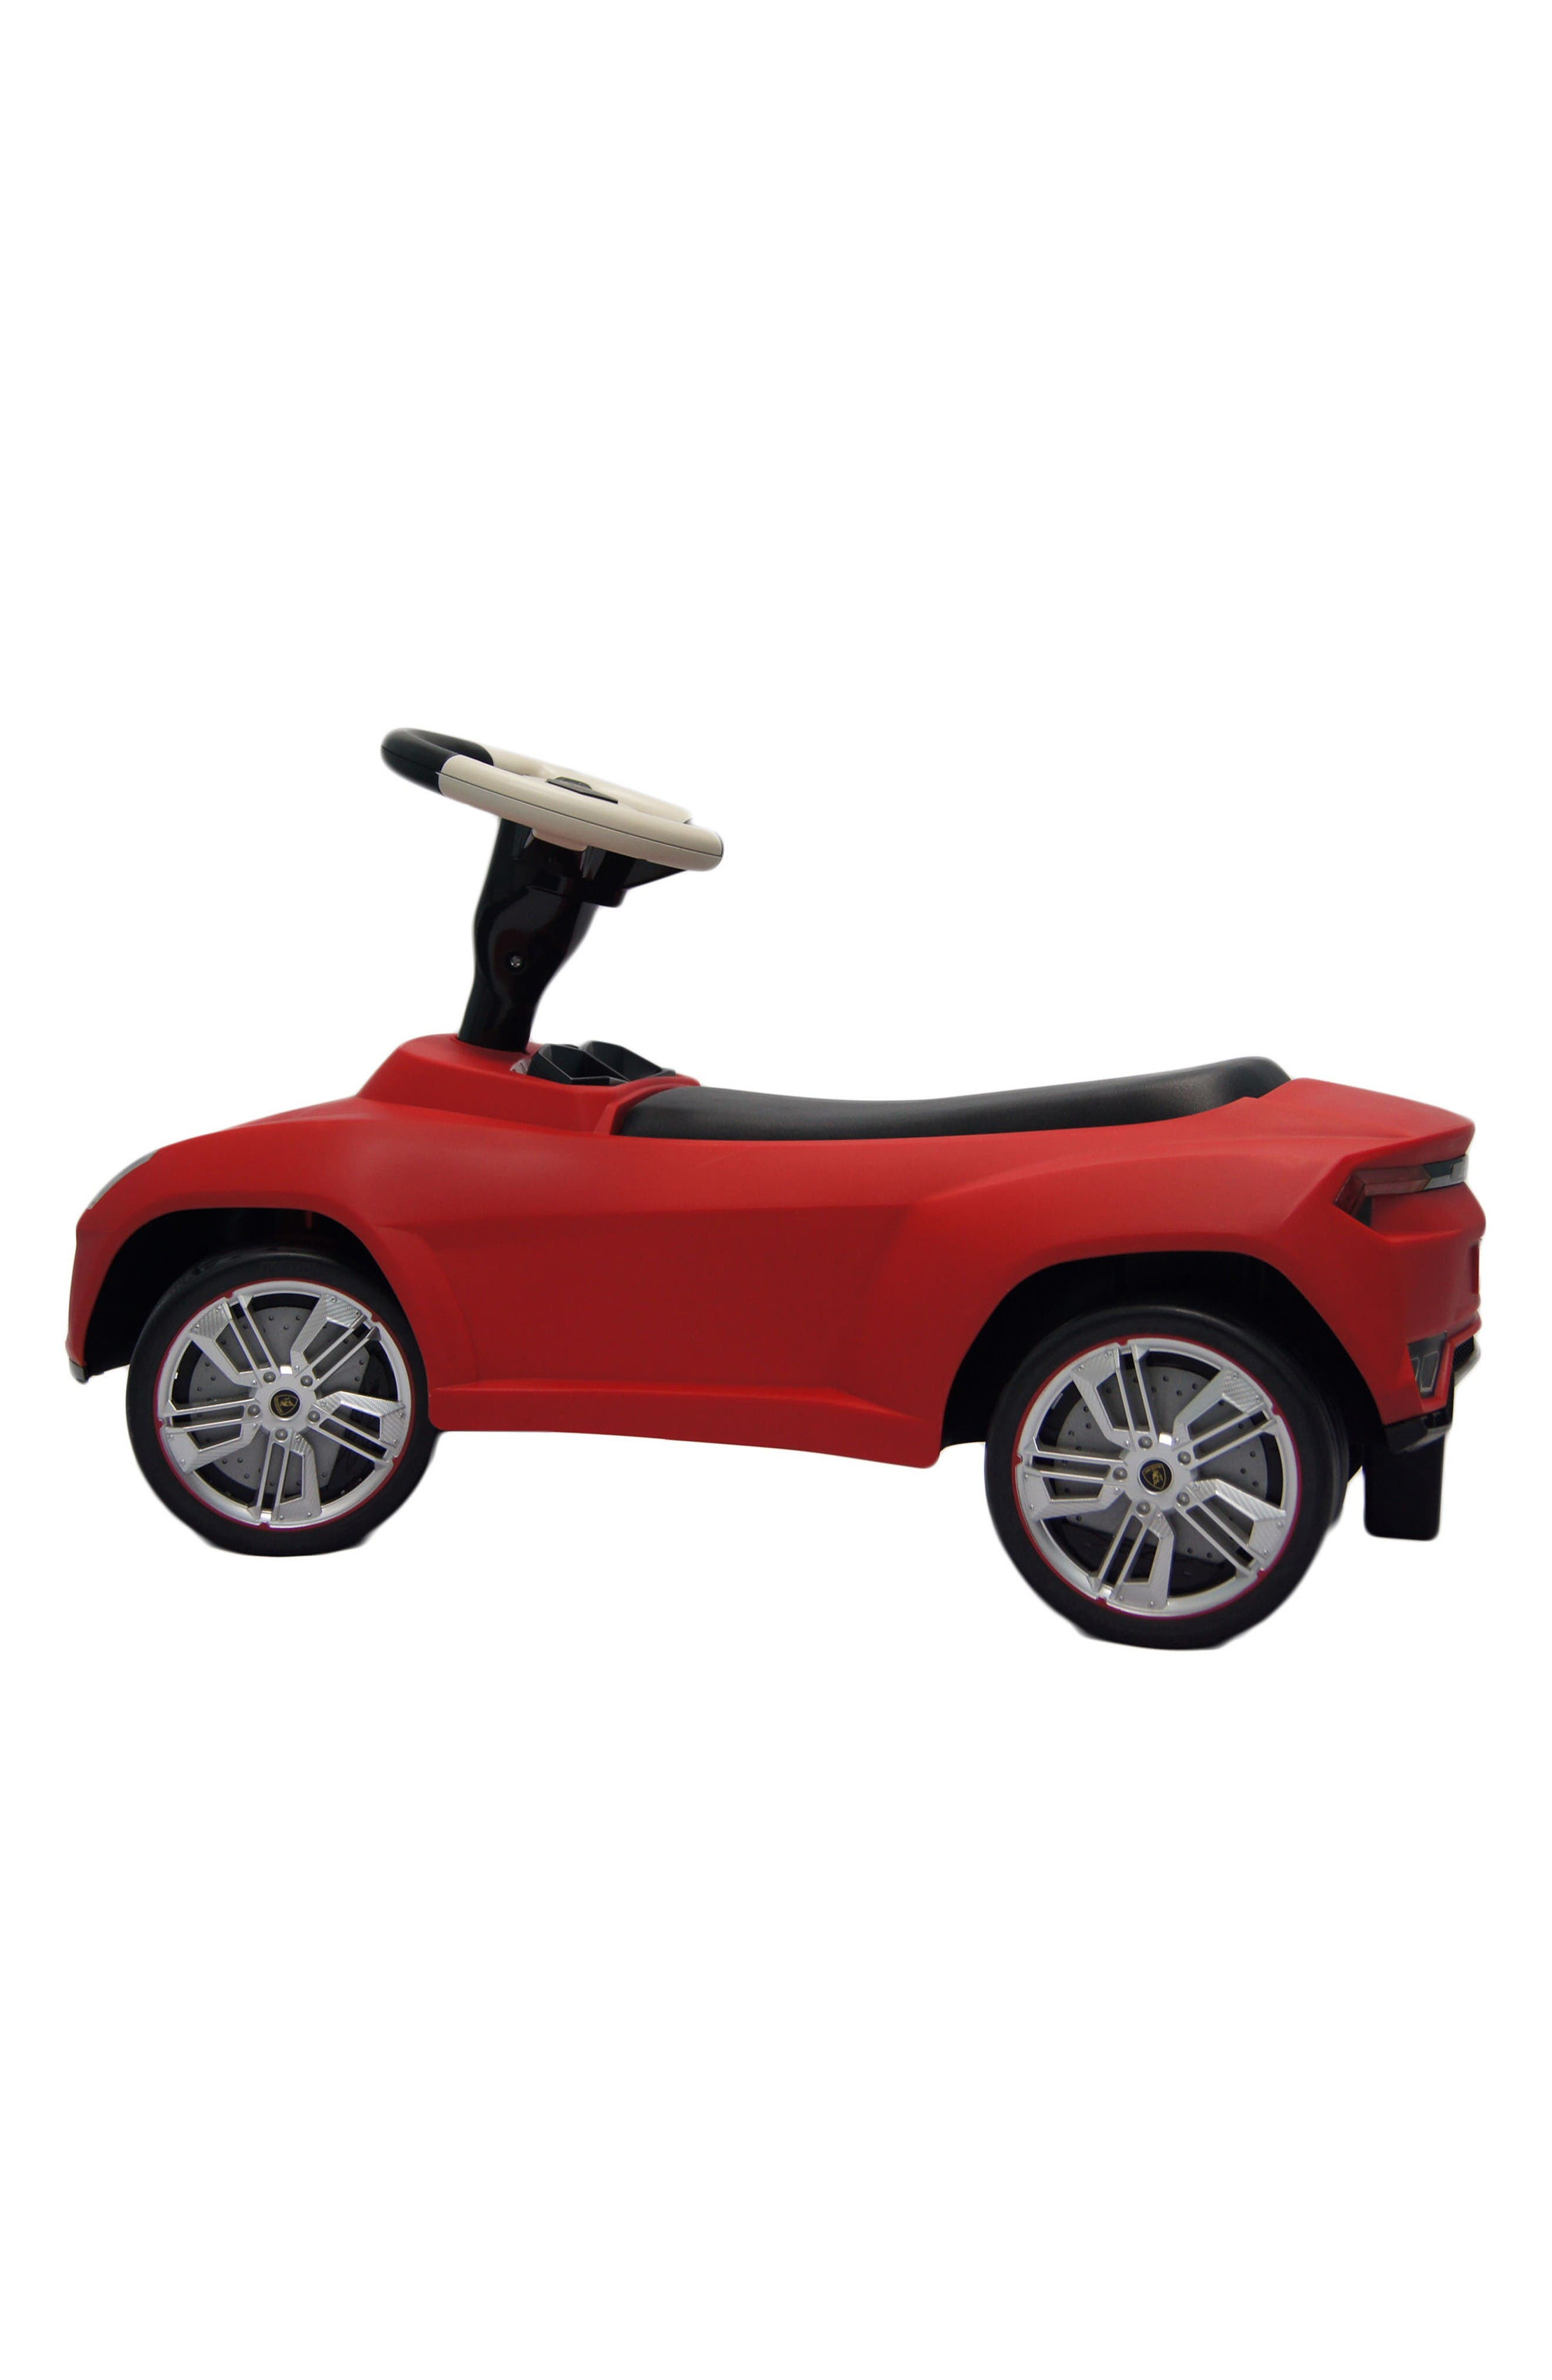 Best Ride on Cars Lamborghini Urus Ride-On Push Car